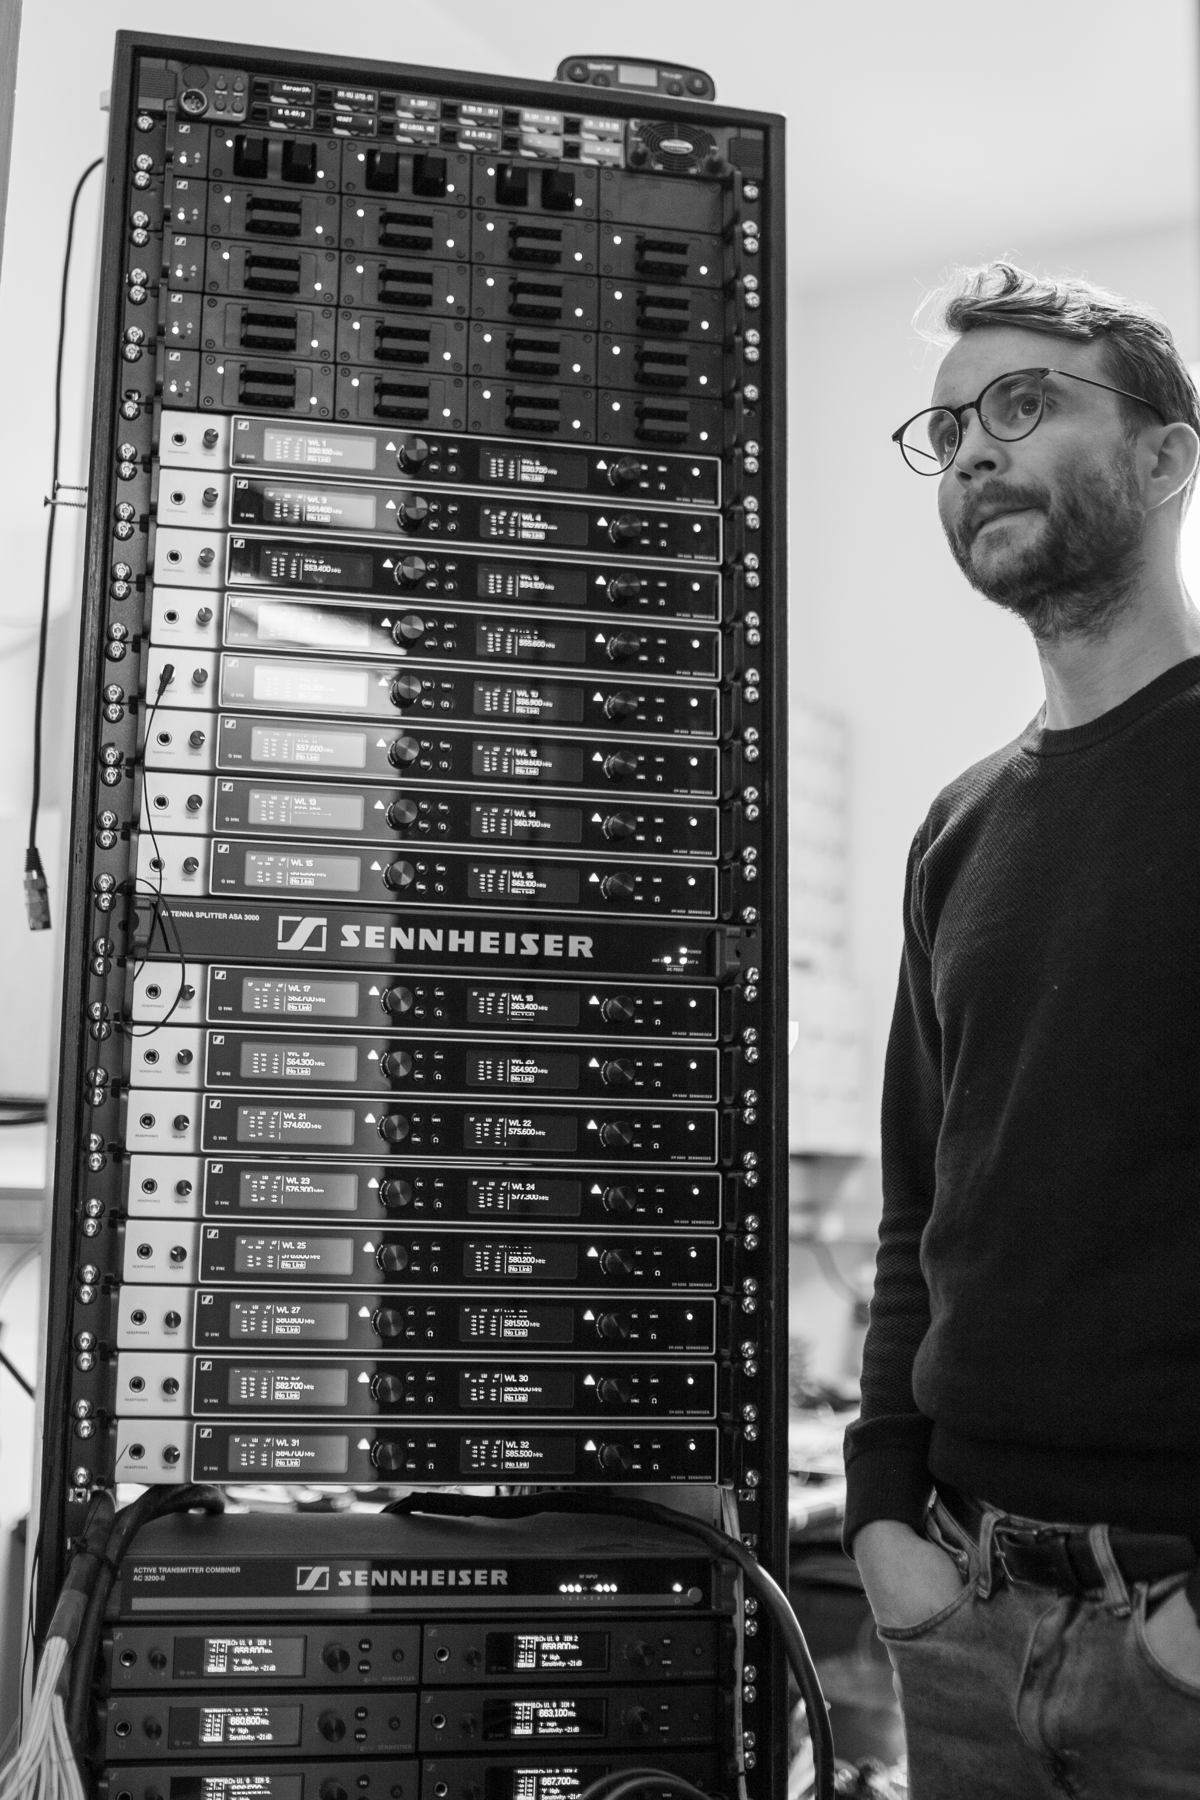 Kristinn Gauti Einarsson, Head of Sound at the National Theatre of Iceland, next to the Sennheiser Digital 6000 racks. At the top: L 6000 charging units, which can be fitted with the respective inserts for all transmitters in the Digital 6000 series